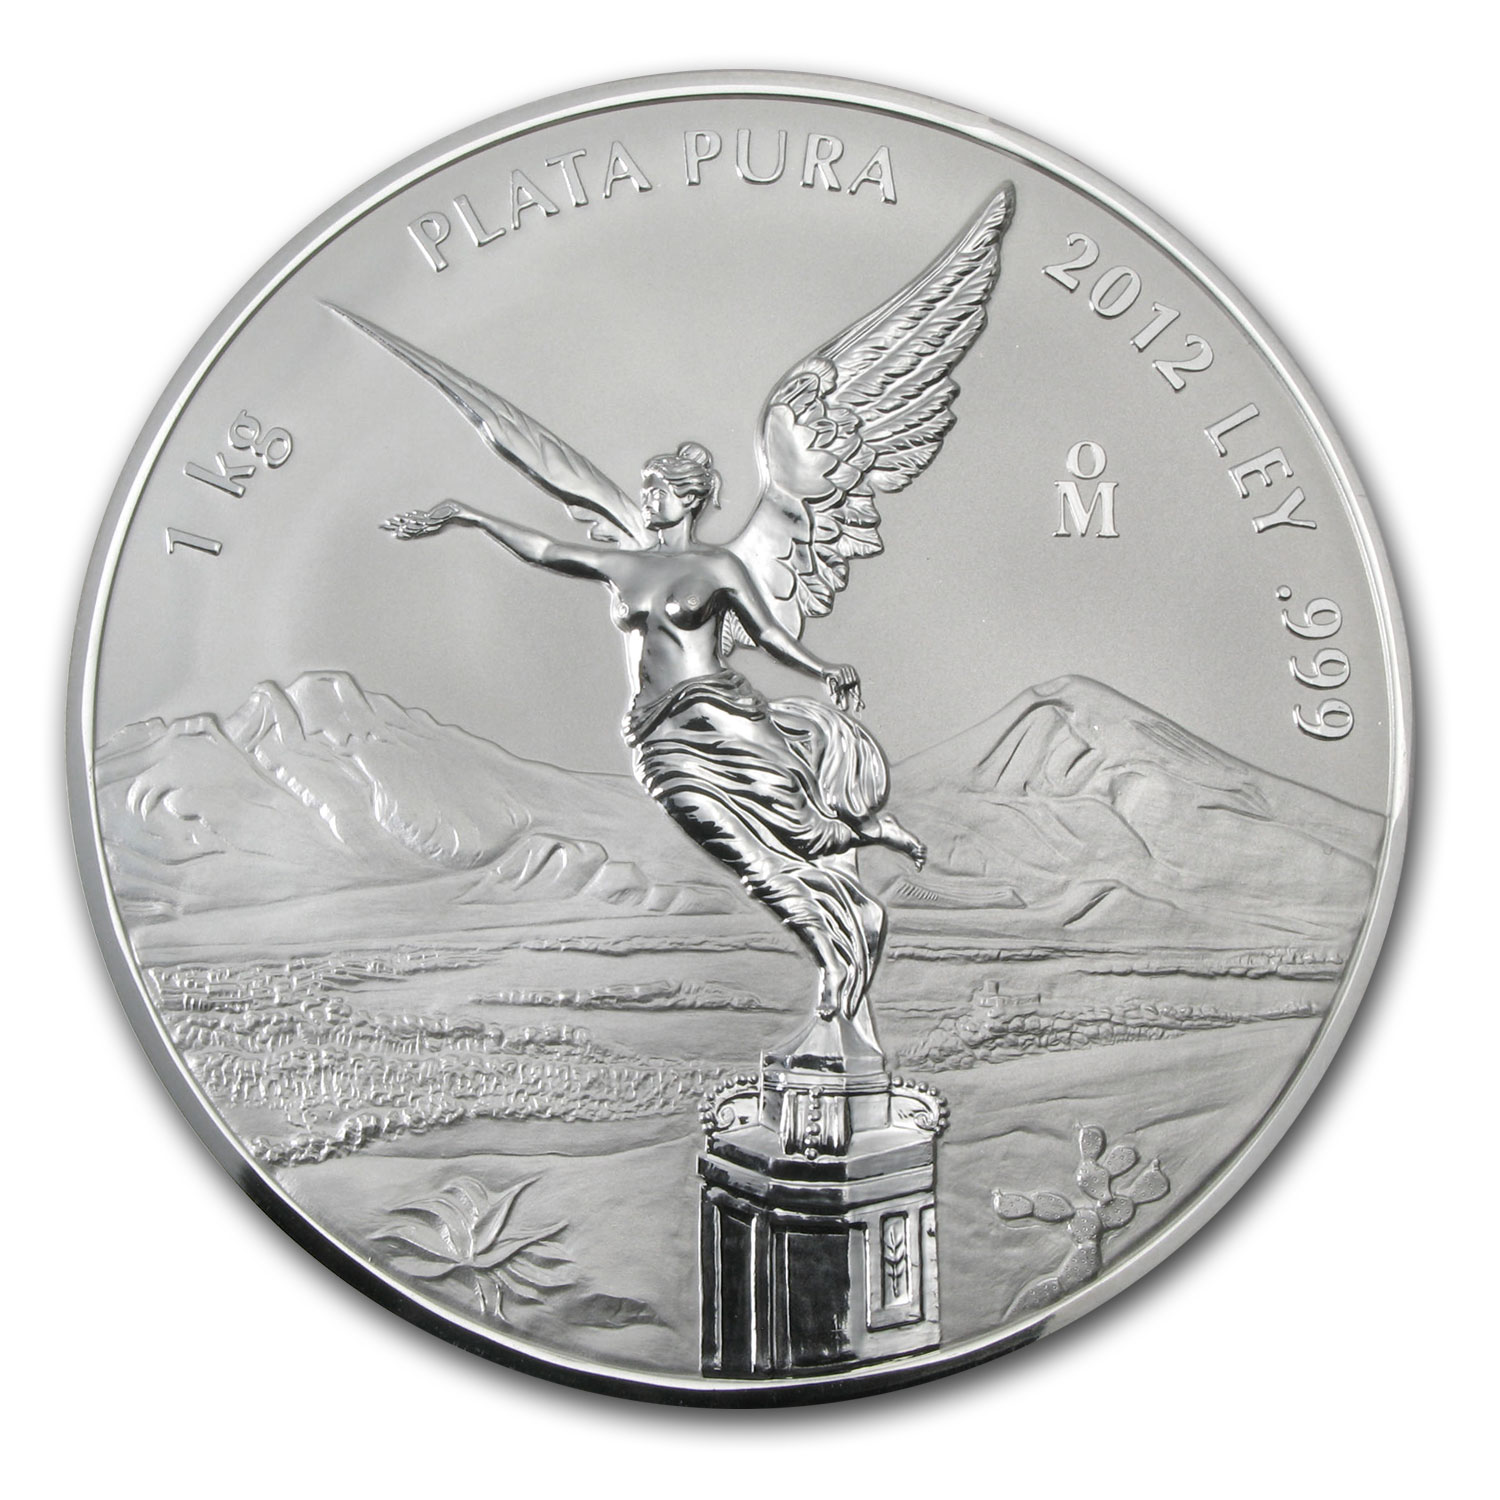 2012 32.15 oz Kilo Silver Libertad Proof Like - (w/ Box & CoA)